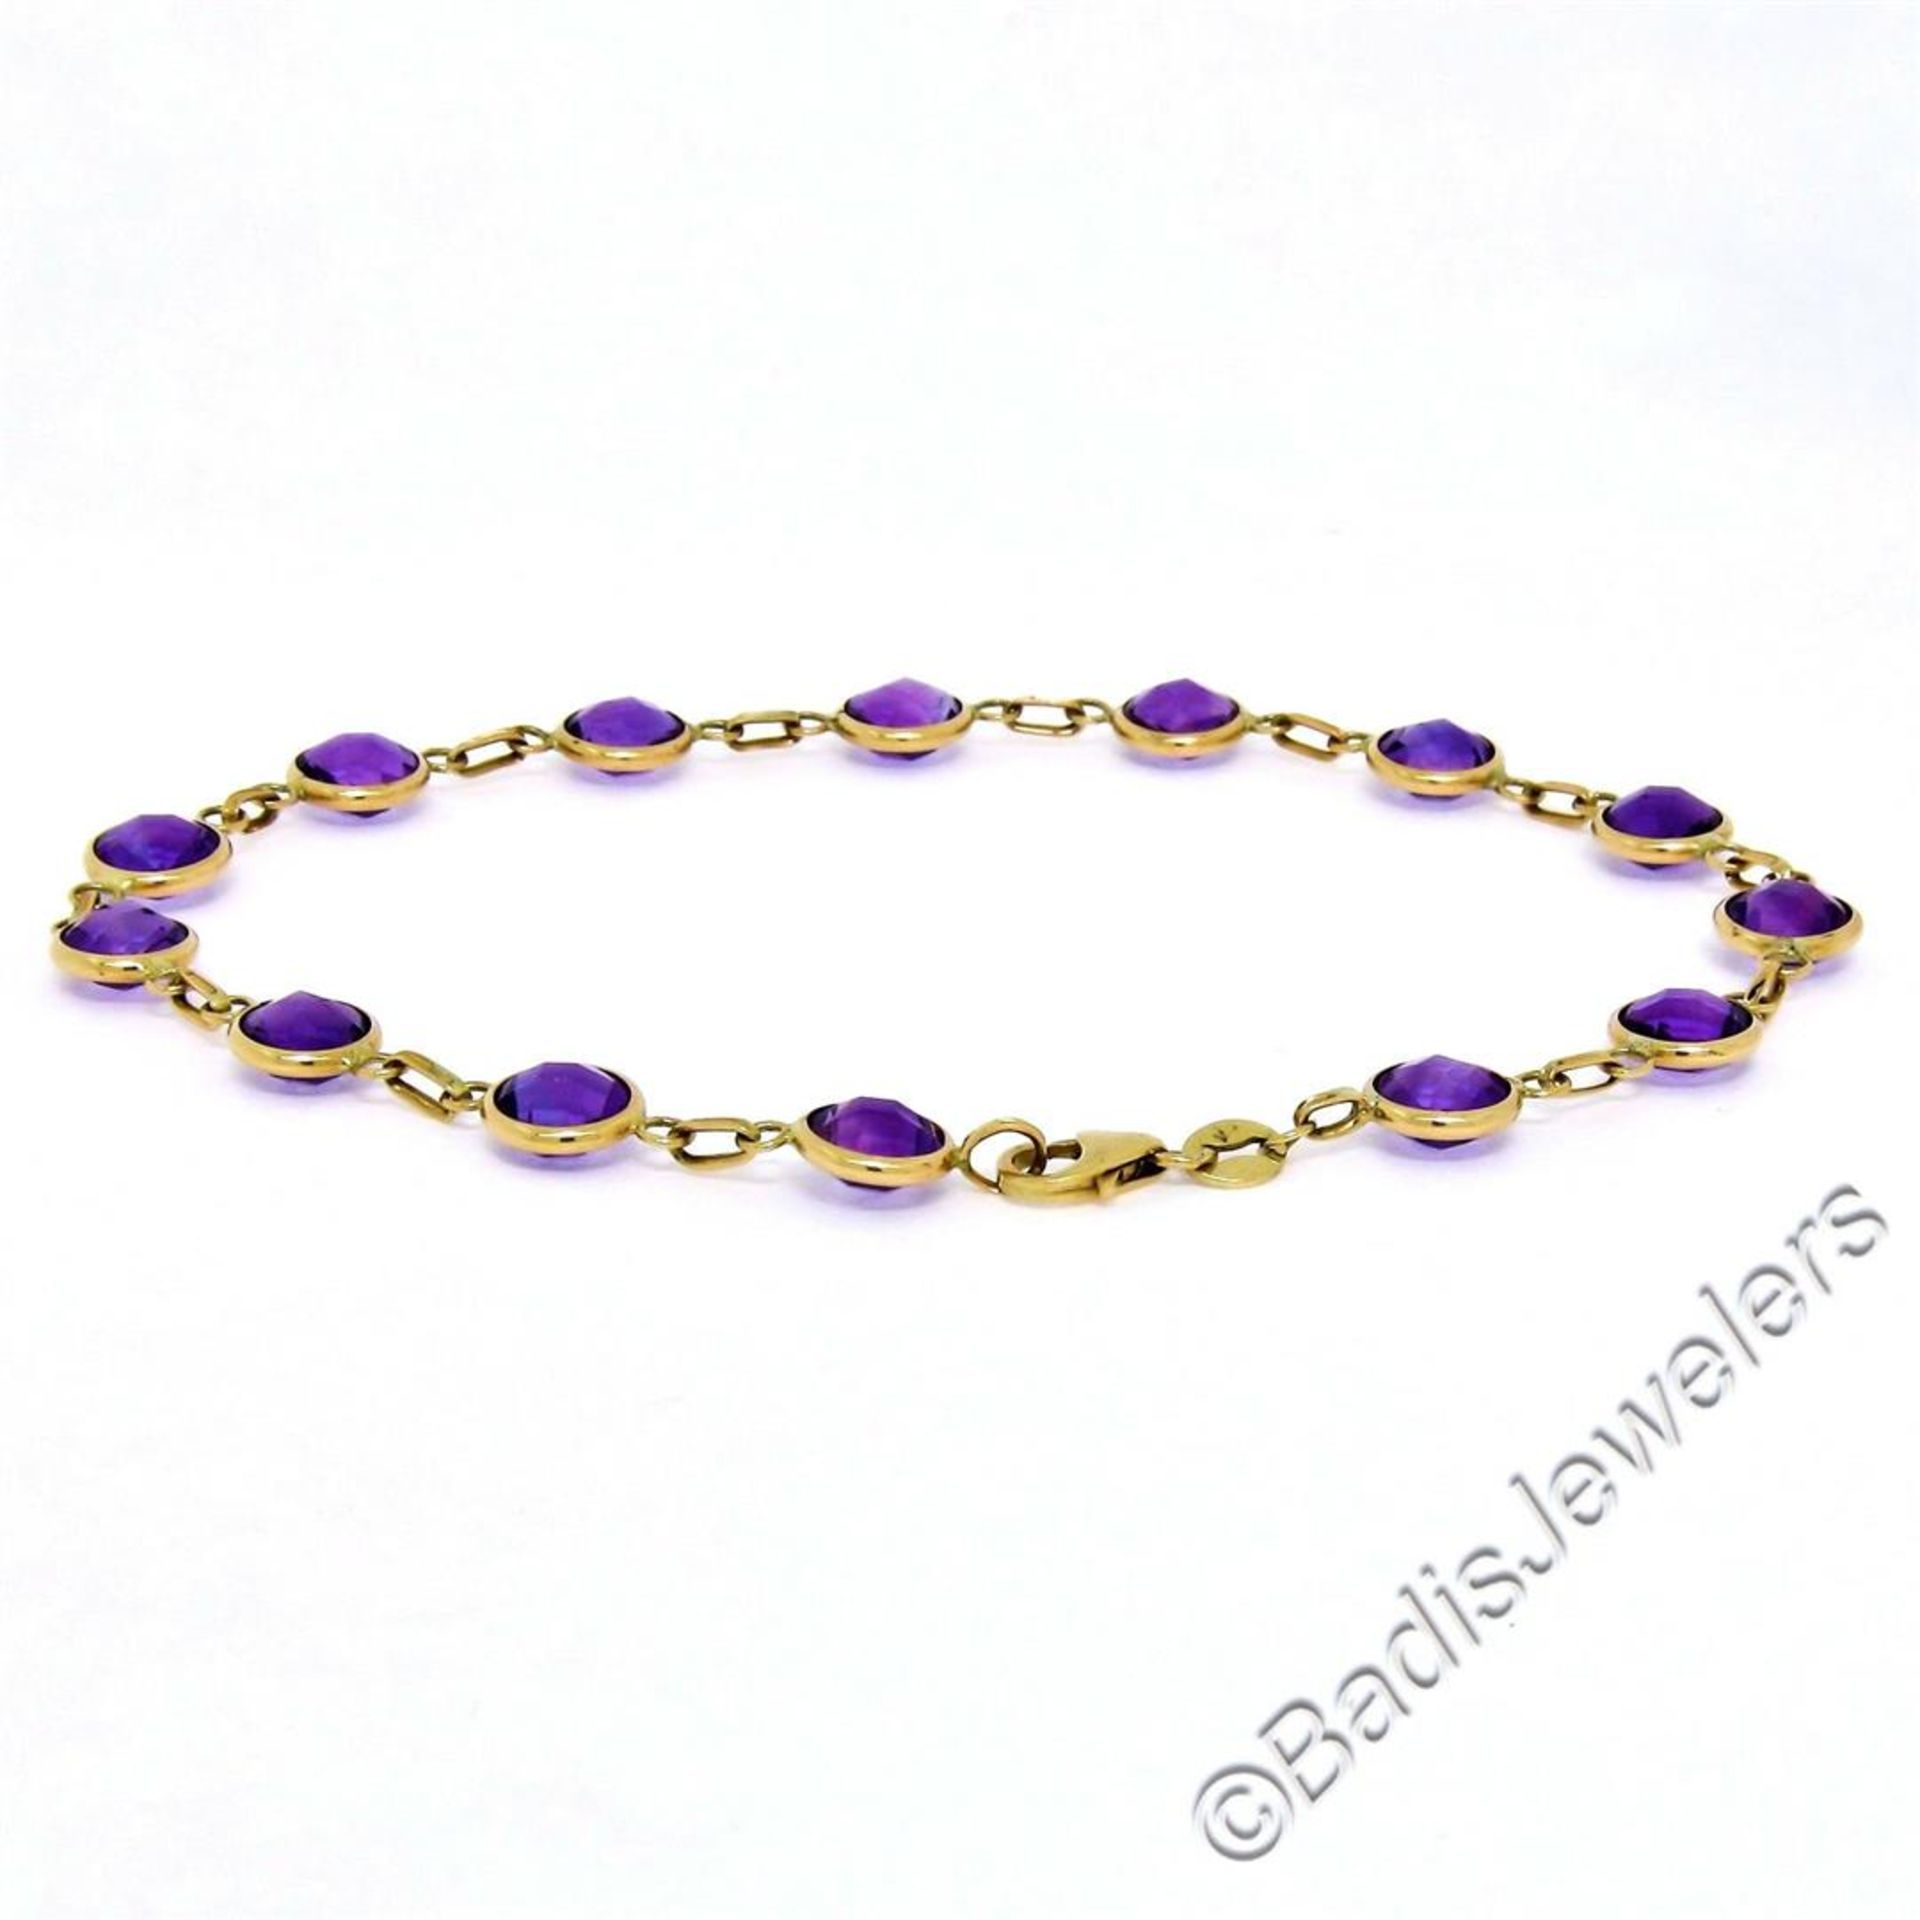 14kt Yellow Gold 10.50ctw Round Checkerboard Amethyst by the Yard Chain Bracelet - Image 4 of 5